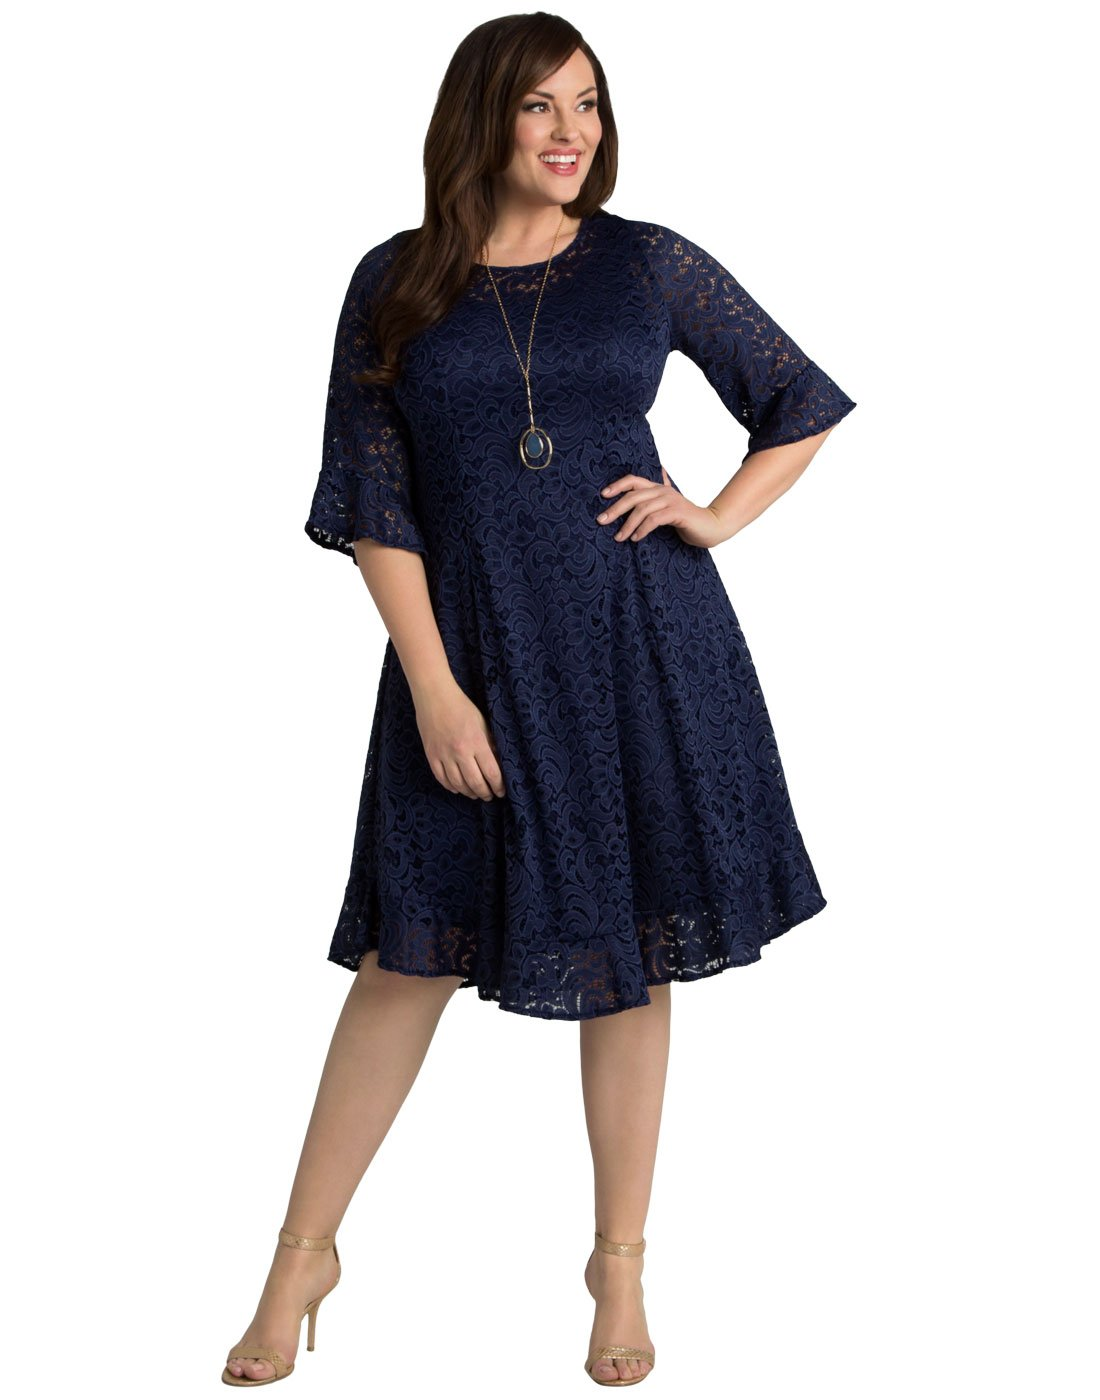 Kiyonna Women\'s Plus Size Livi Lace Dress 1X Nouveau Navy